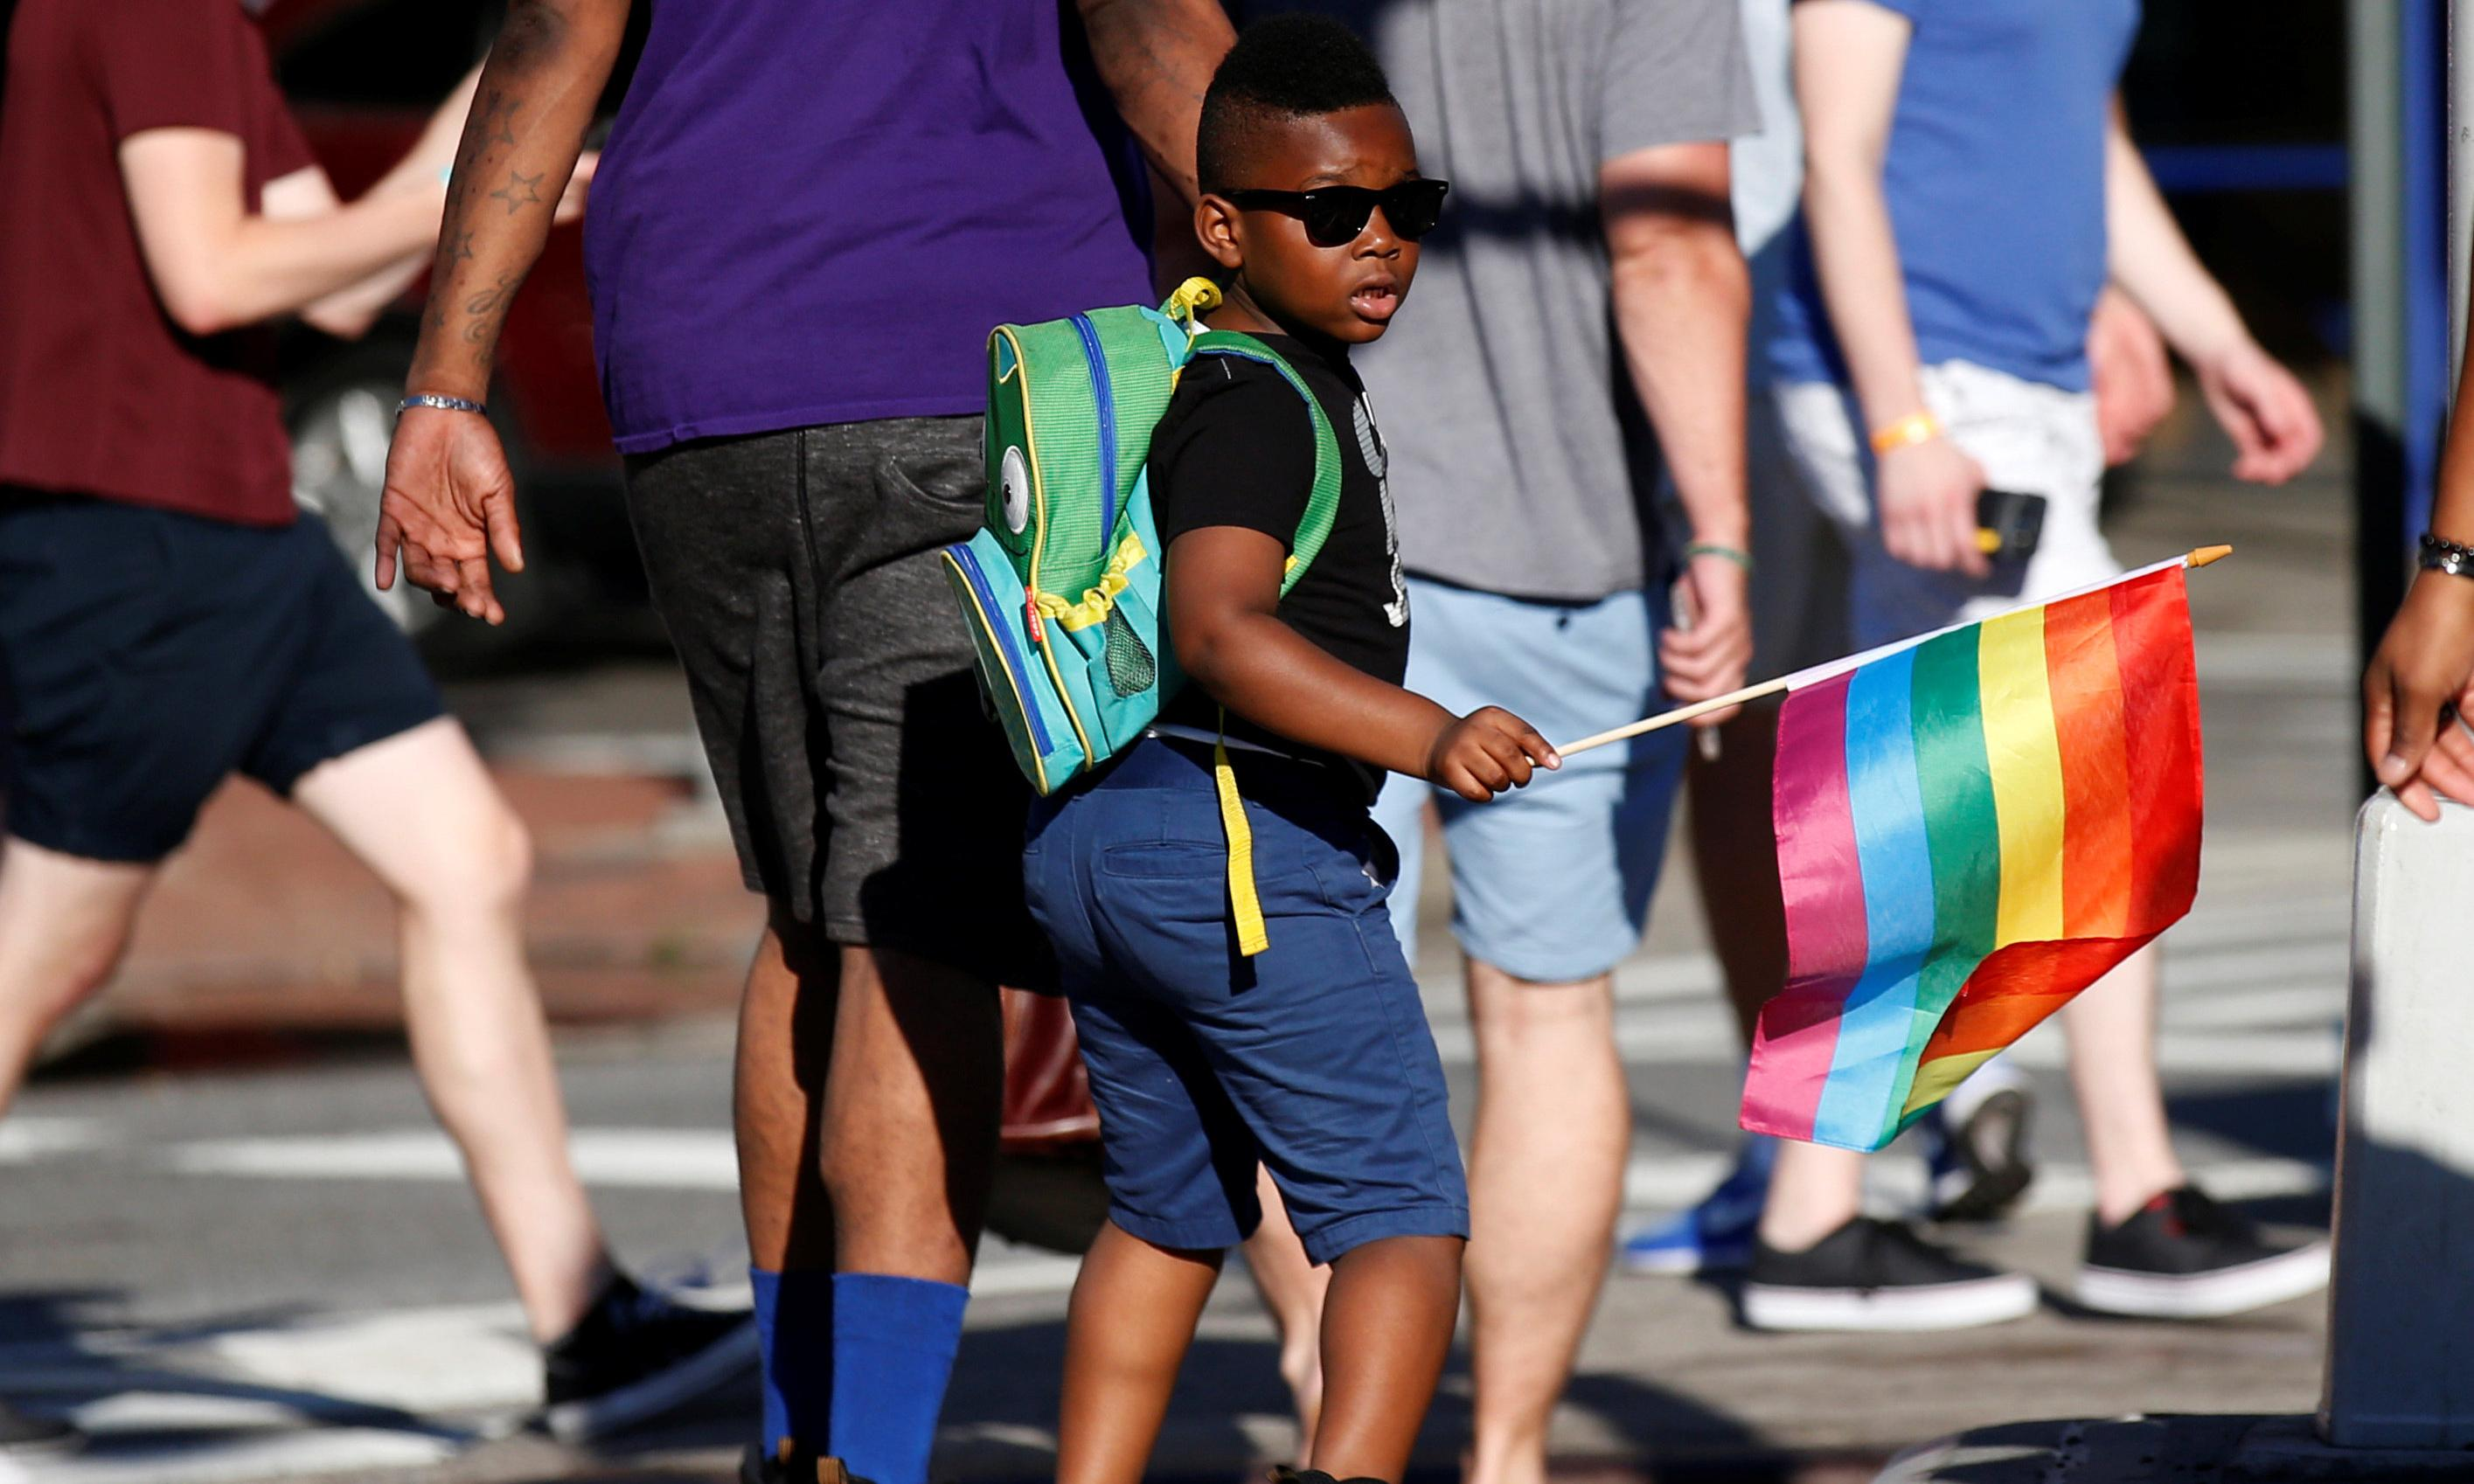 Lives are ruined by shame and stigma. LGBT lessons in schools are vital